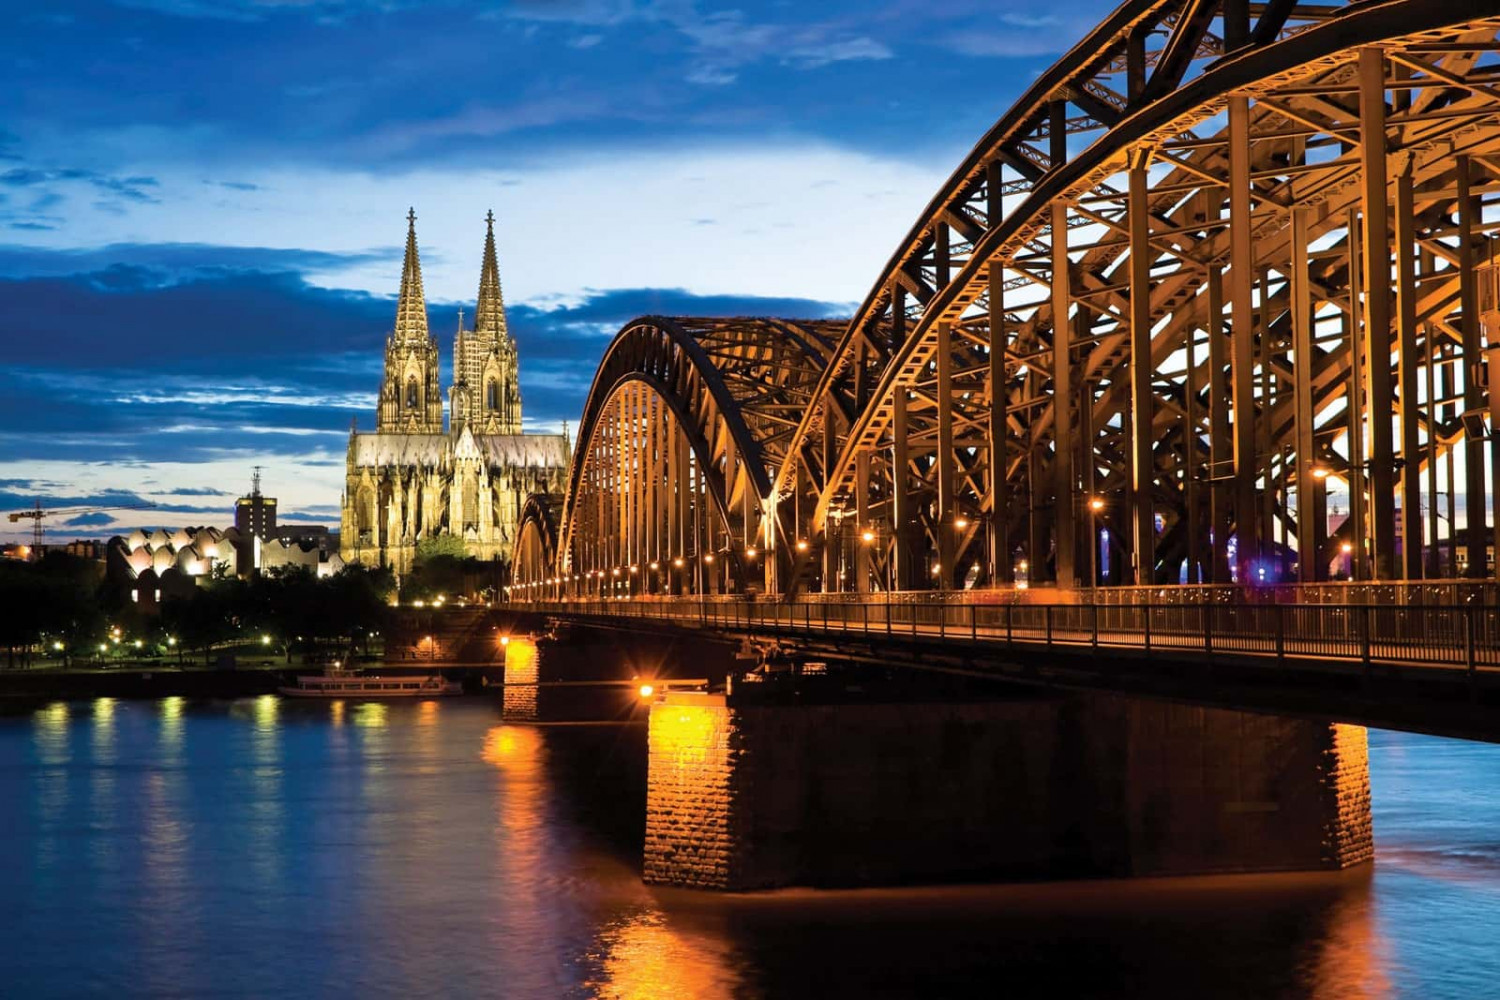 @2020 ISM - Cologne, Germany